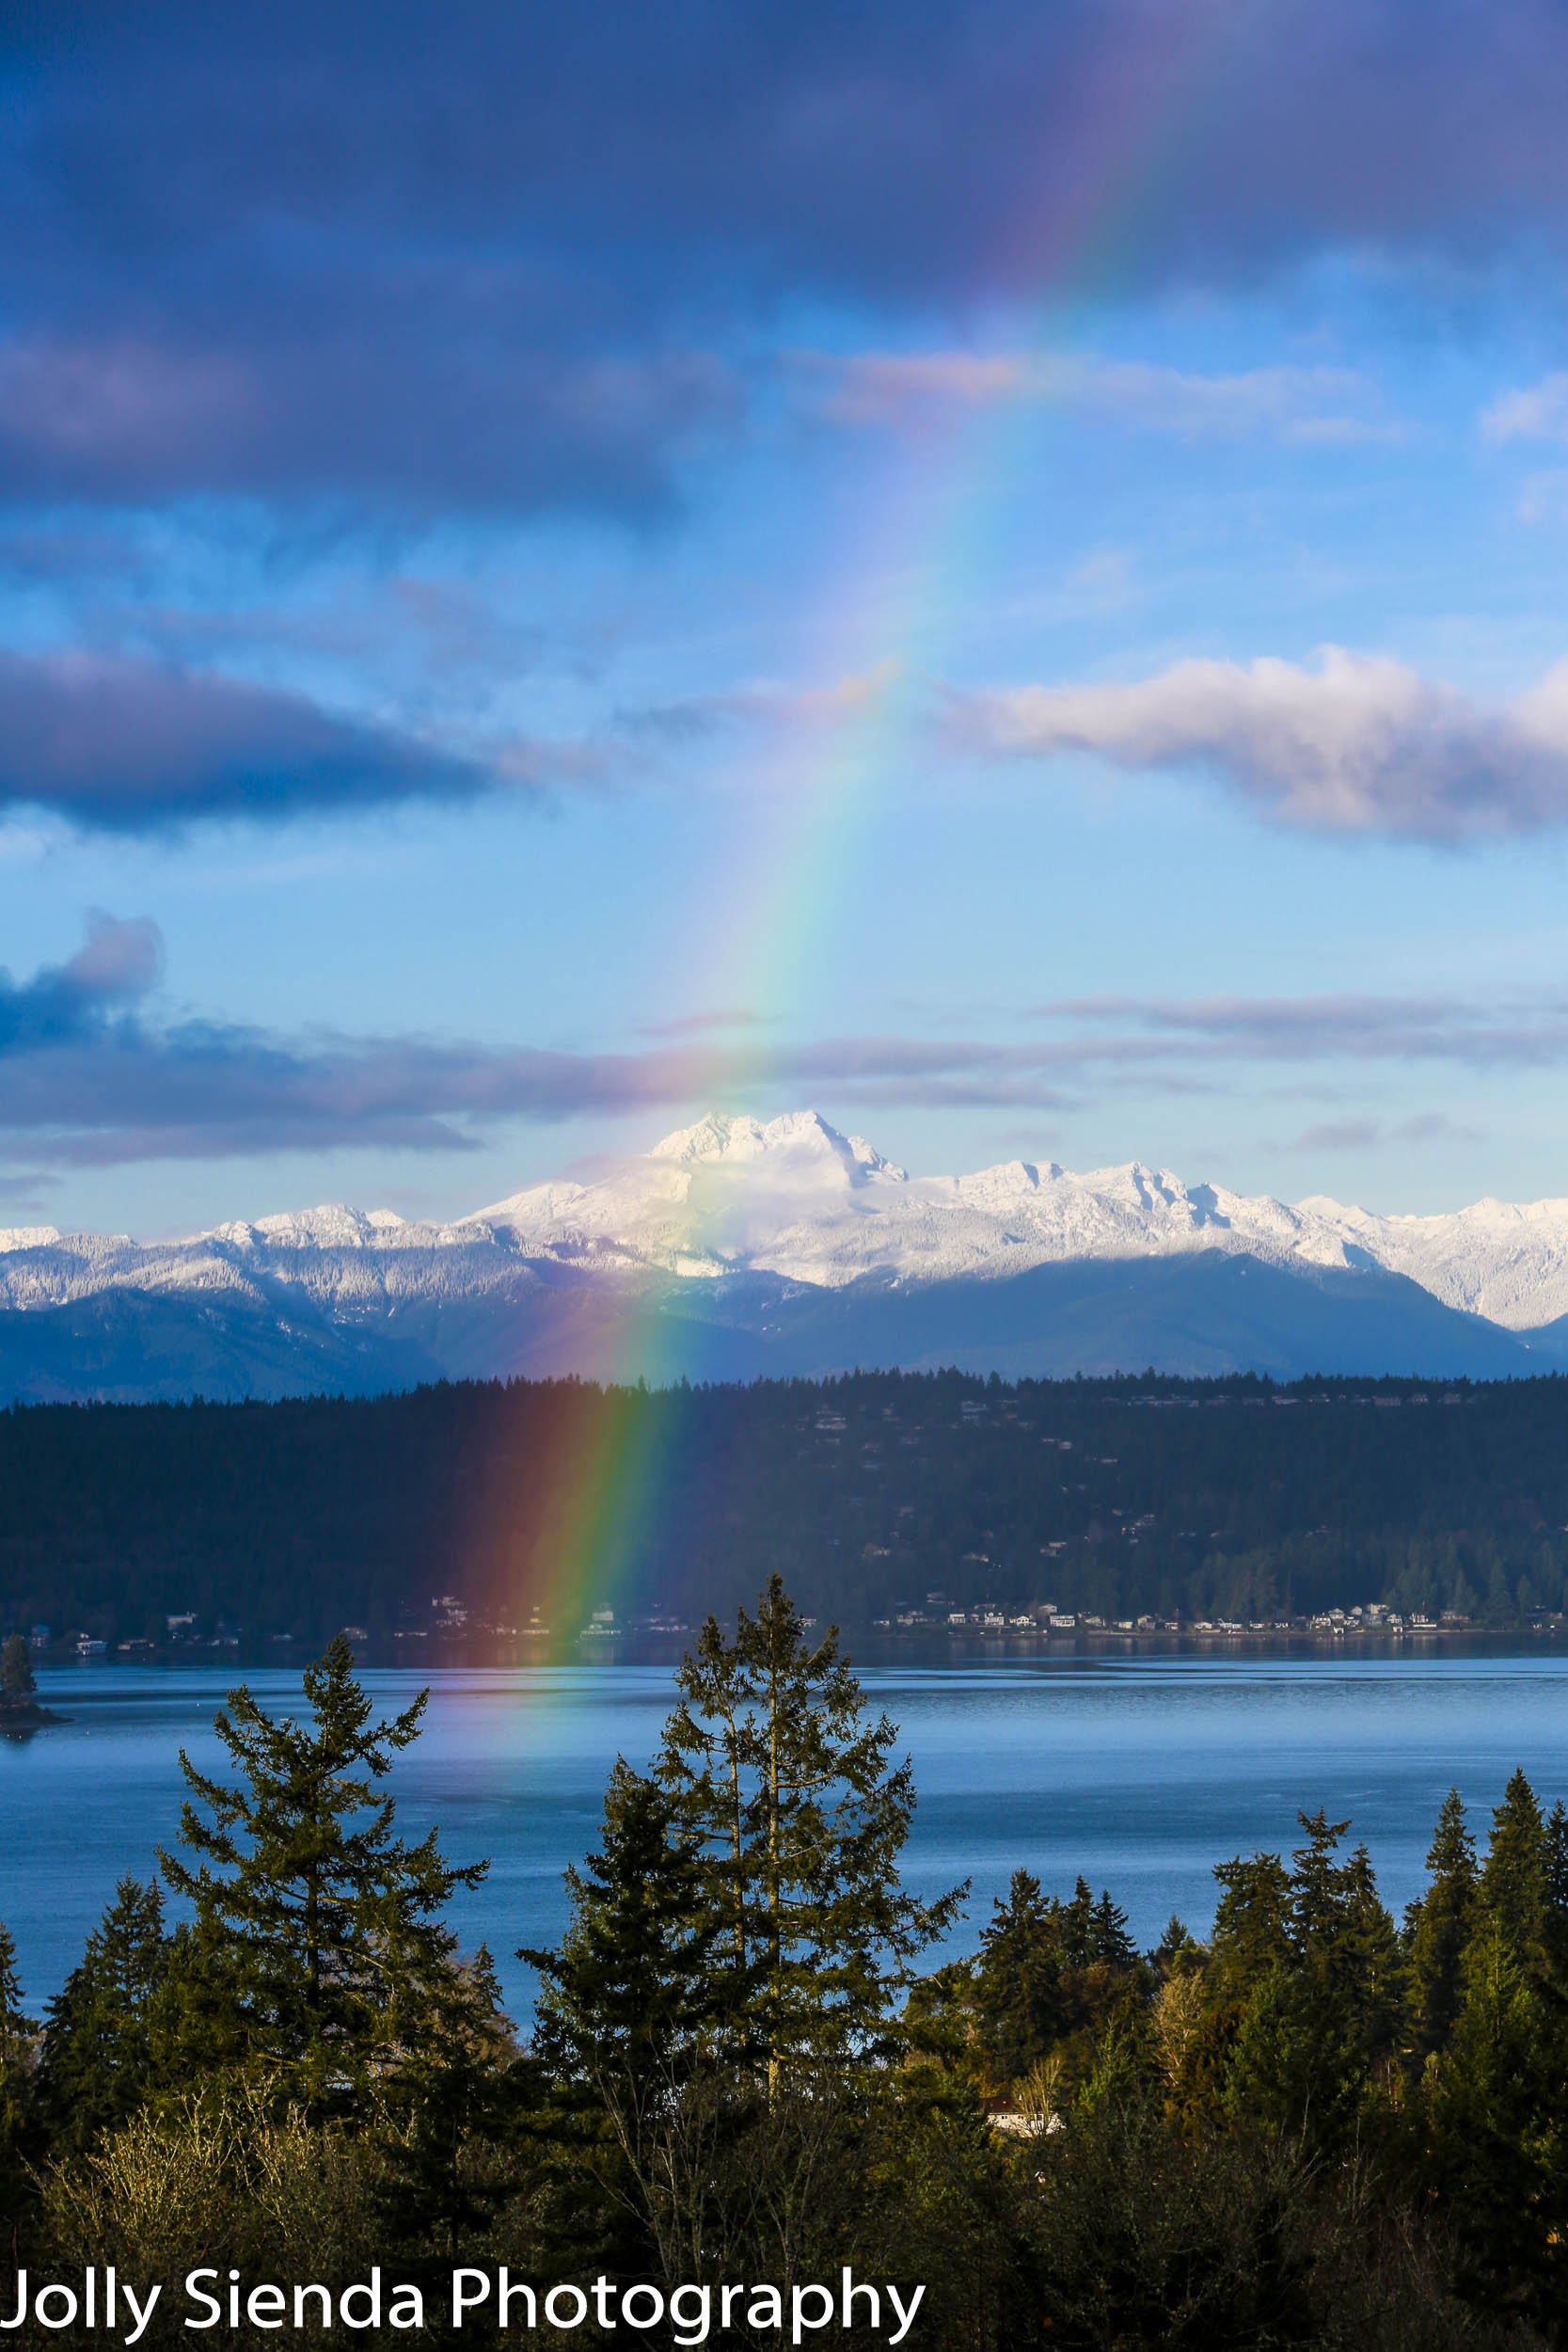 Rainbow over The Brothers Mountain and Dyes Inlet